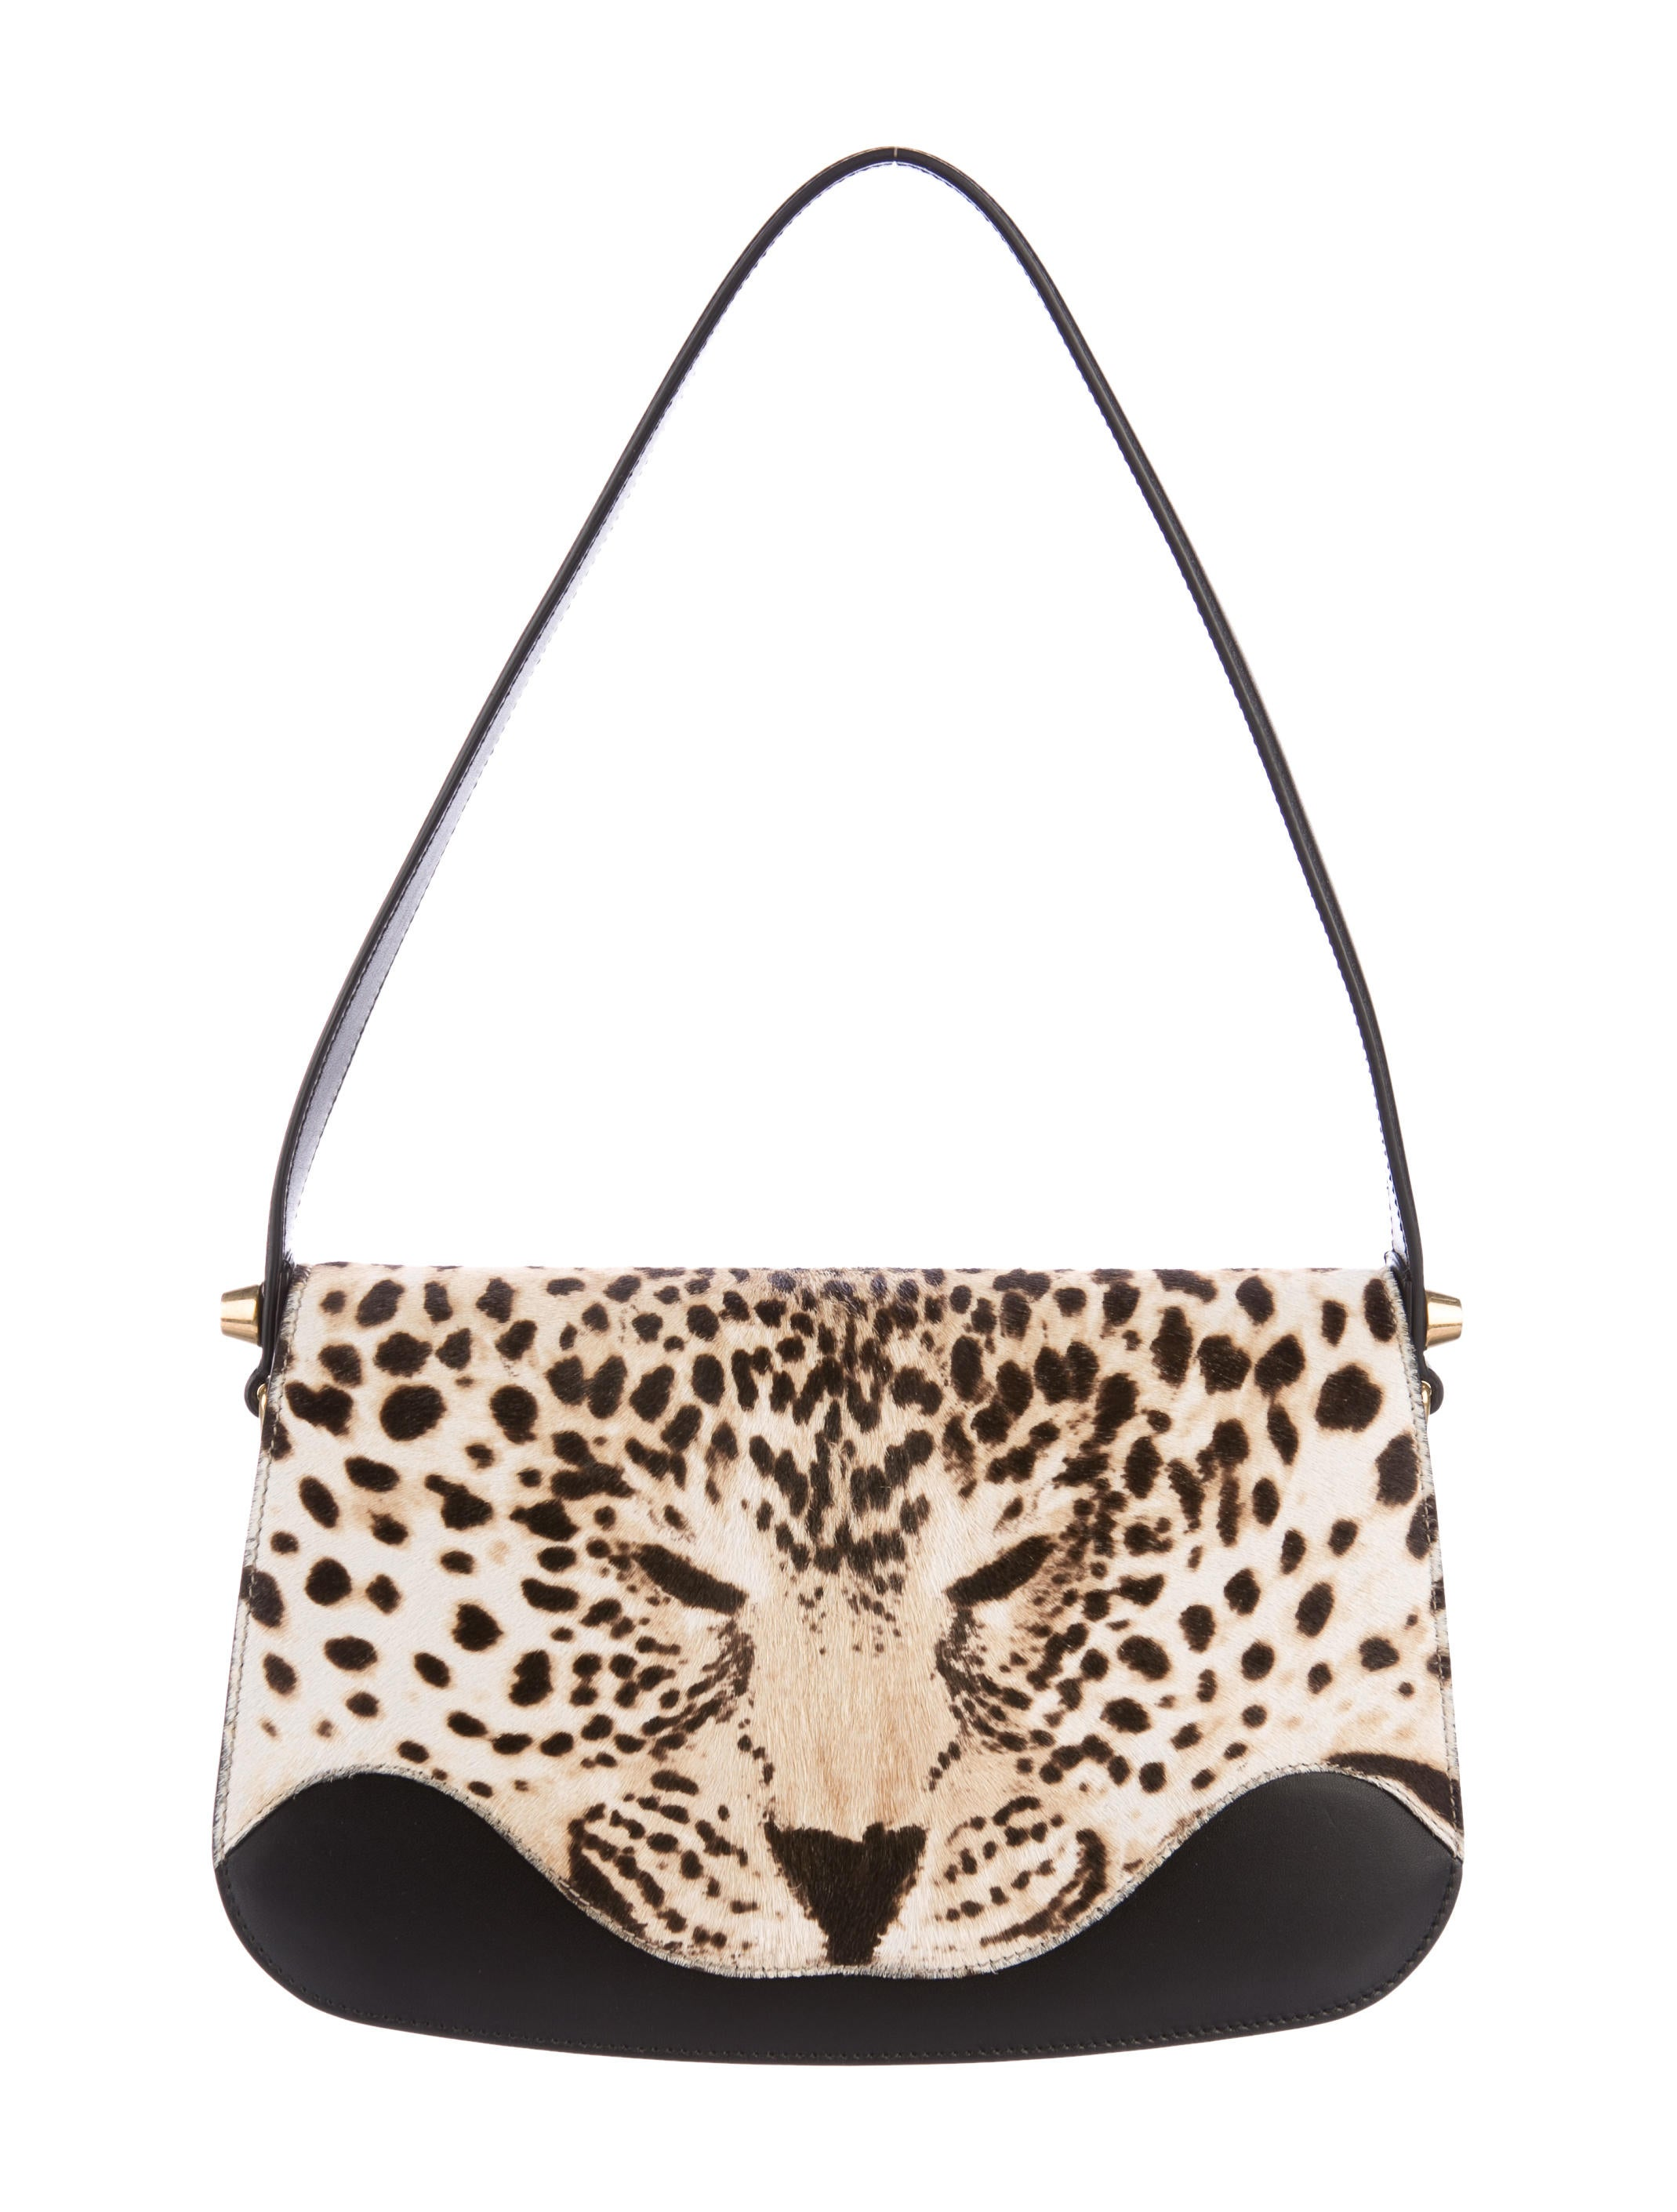 c81227d87cc2 Gucci Shoulder Bag With Panther Face | Stanford Center for ...